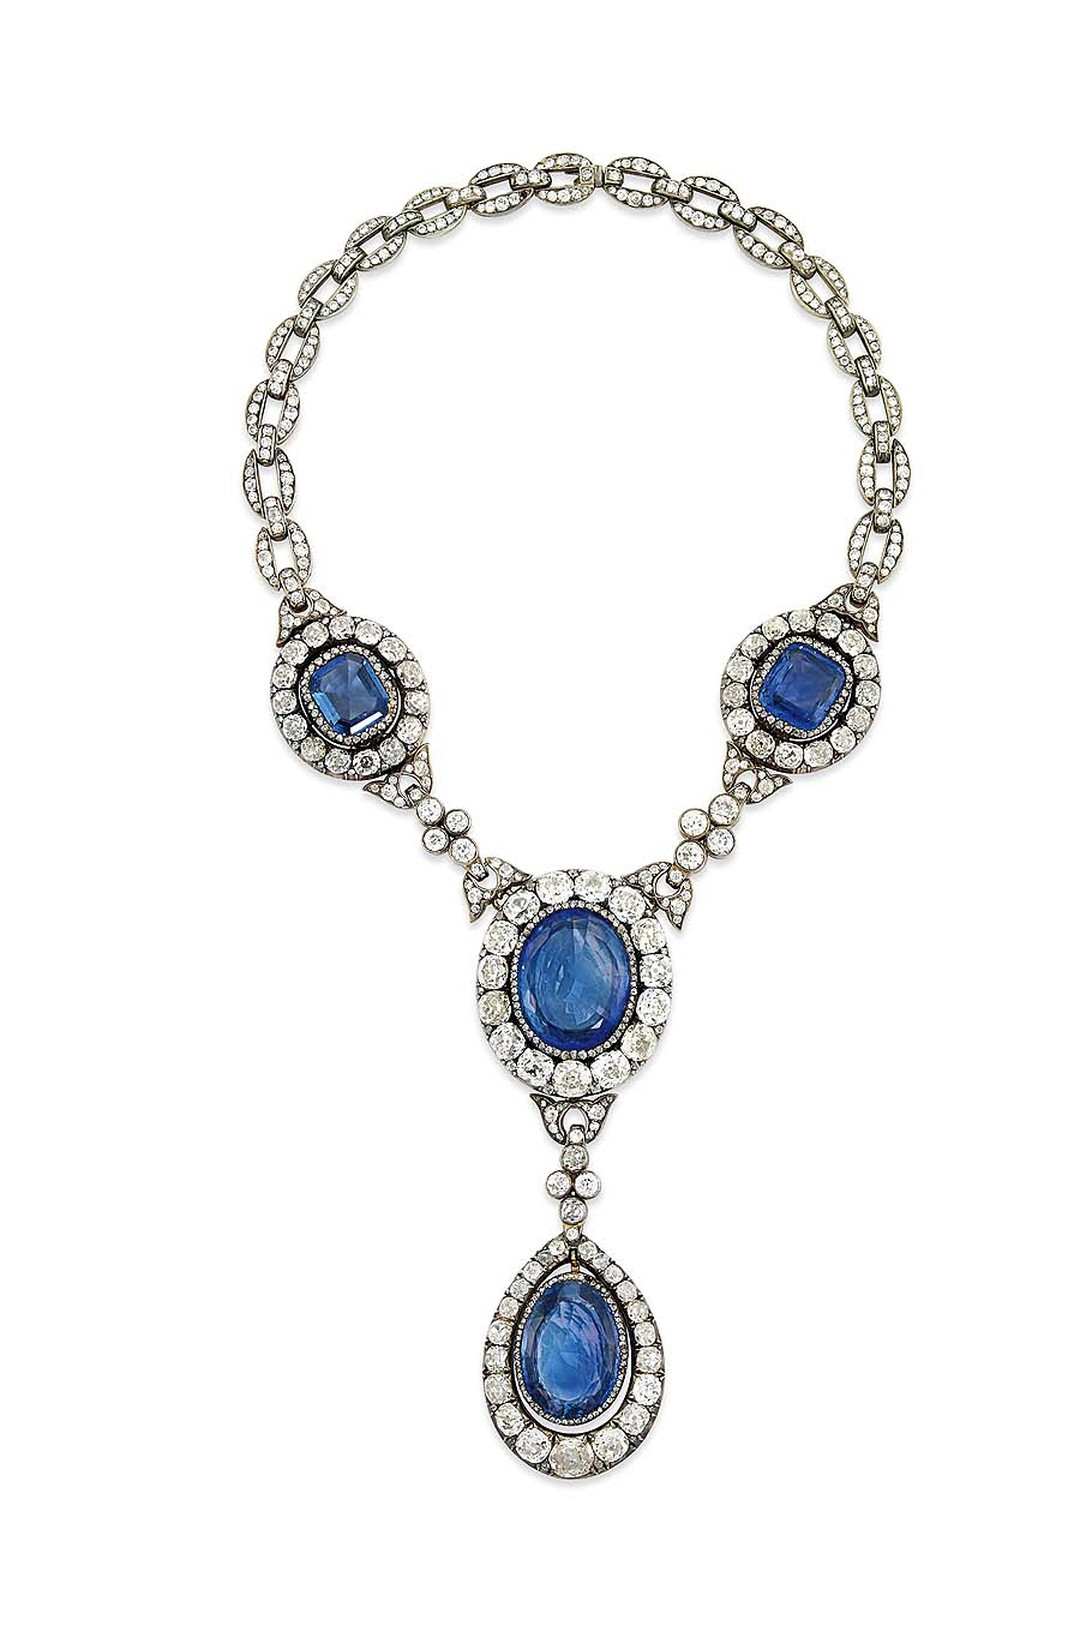 ChristiesLondonImportantJewelsauction003.jpg